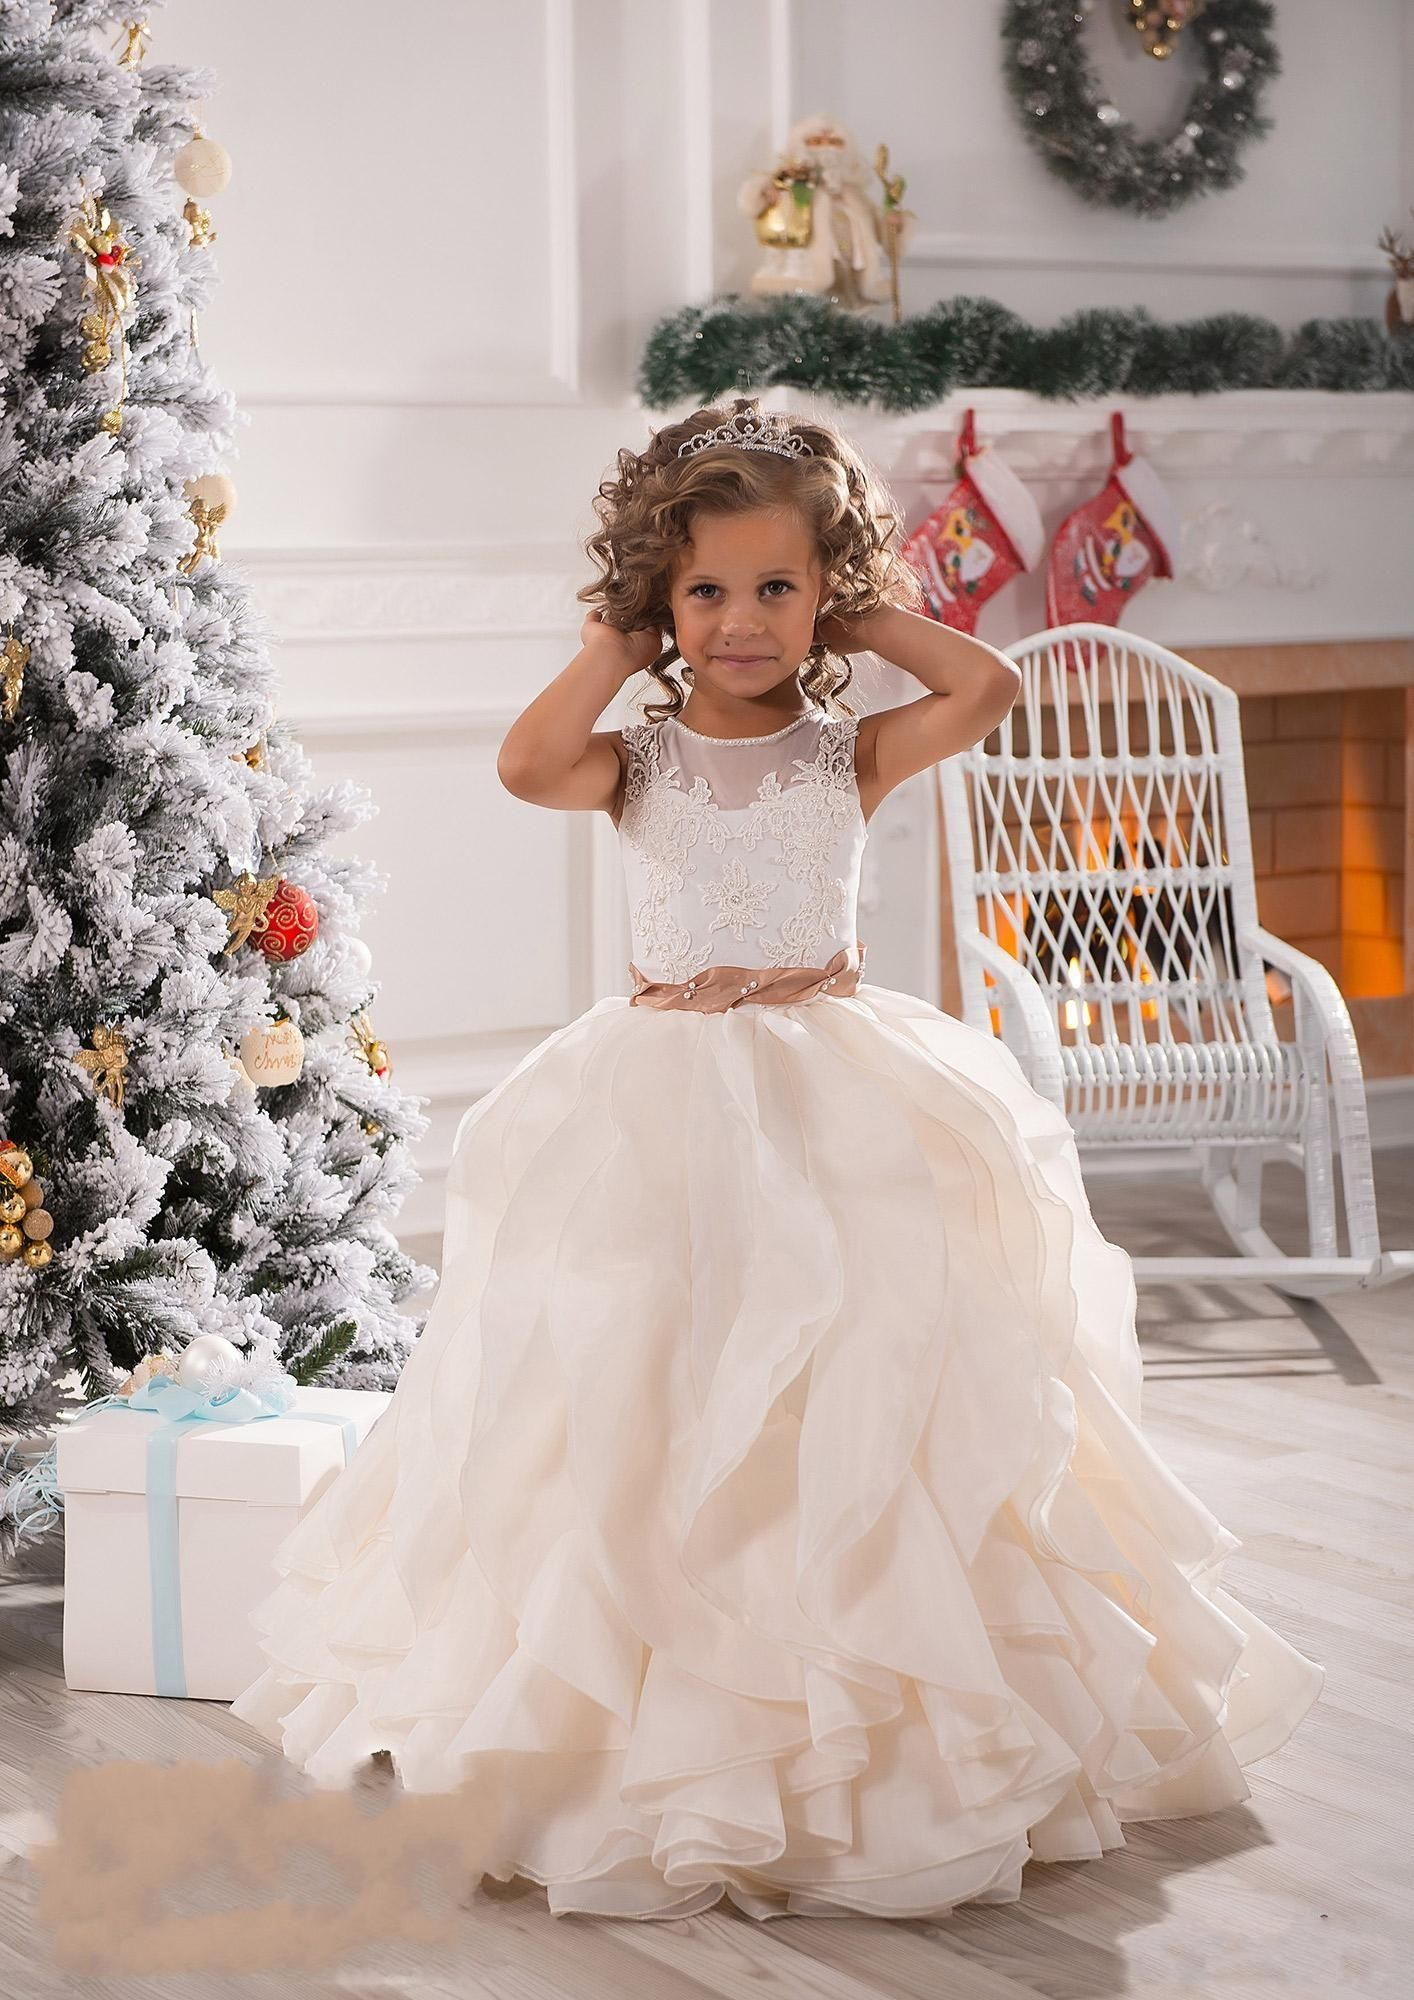 2018 cheap flower girls dresses for weddings illusion neck lace 2016 new flower girls dresses for weddings illusion neck lace white ivory sashes ruffles party princess children kids party birthday gowns online with izmirmasajfo